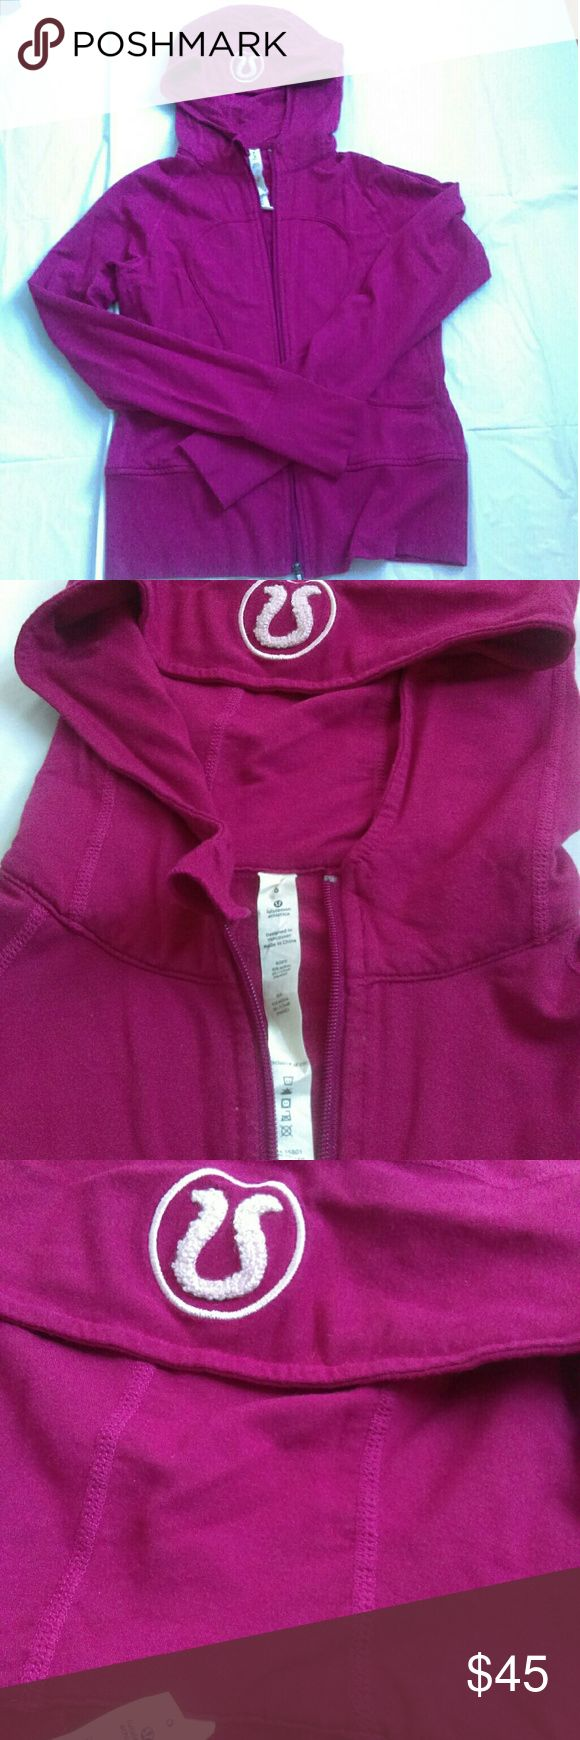 Lululemon Hoodie-Scuba Remix Lux Did not see any holes  or stains except for a tiny snag on the inside of the jacket. Excellent used condition. Berry pinkish color. Fitted. Very soft! Pet and smoke free home.  Measurements are Approx: Arm pit to arm pit 16 inches Shoulder to bottom length 21 inches Middle waist 15 Inches lululemon athletica Tops Sweatshirts & Hoodies